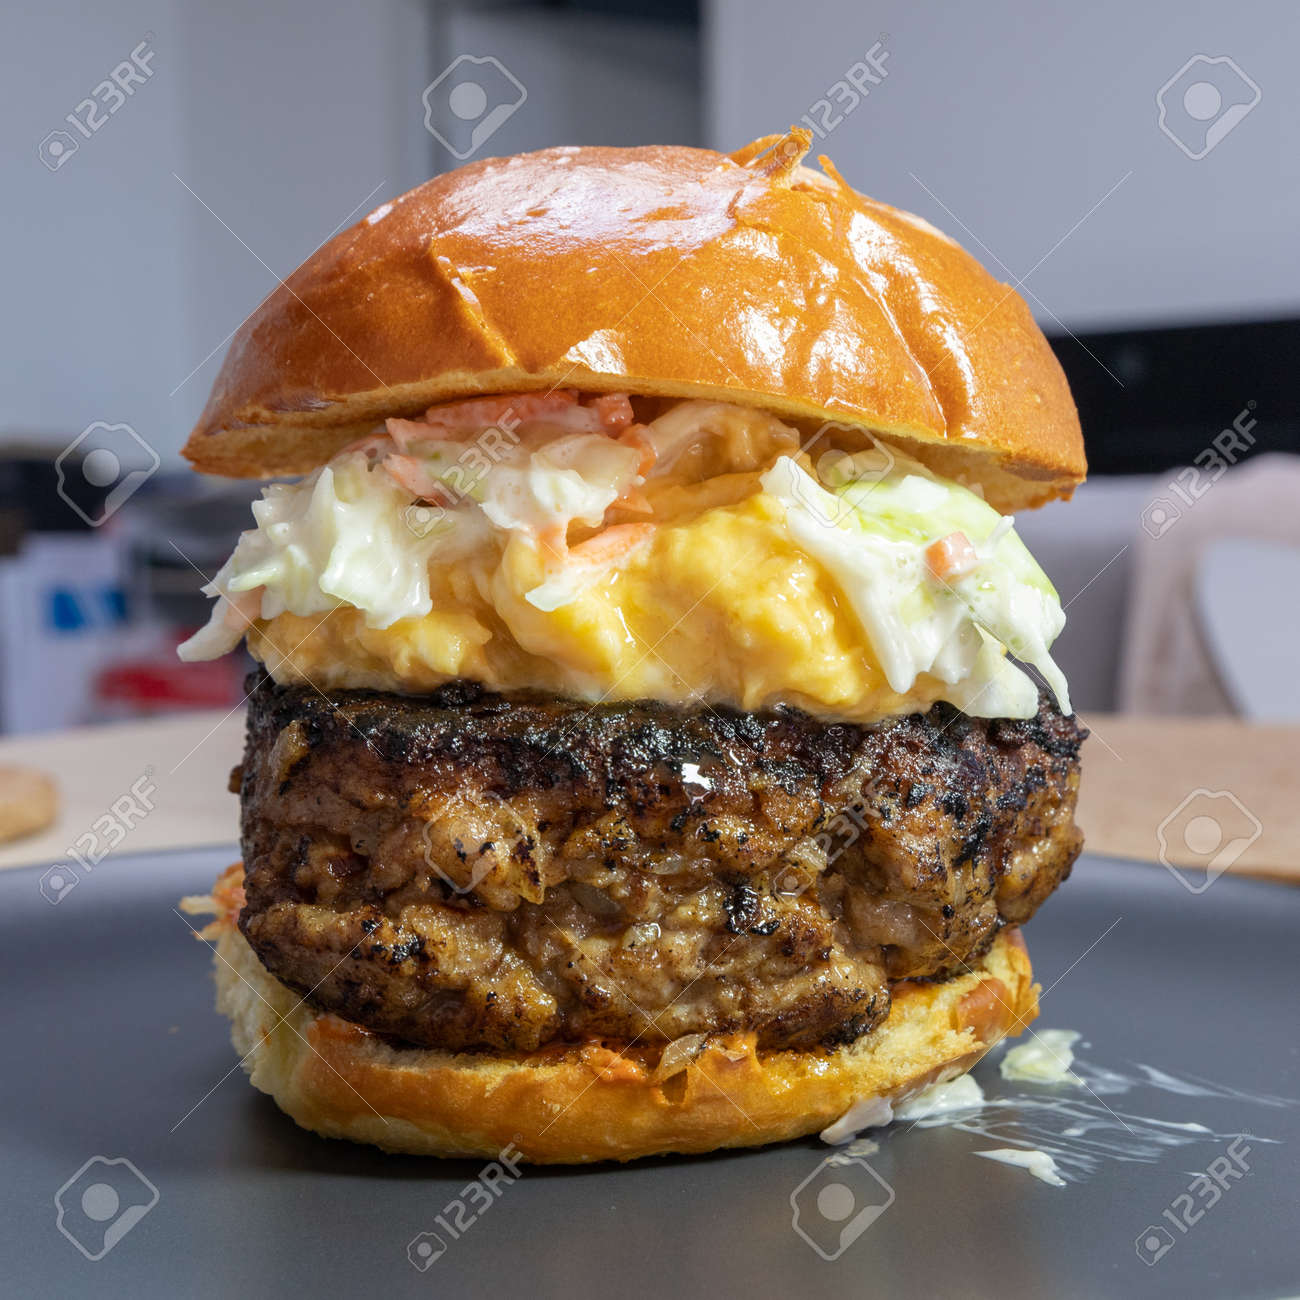 A big beef burger with scrambled eggs and coleslaw. - 156019545